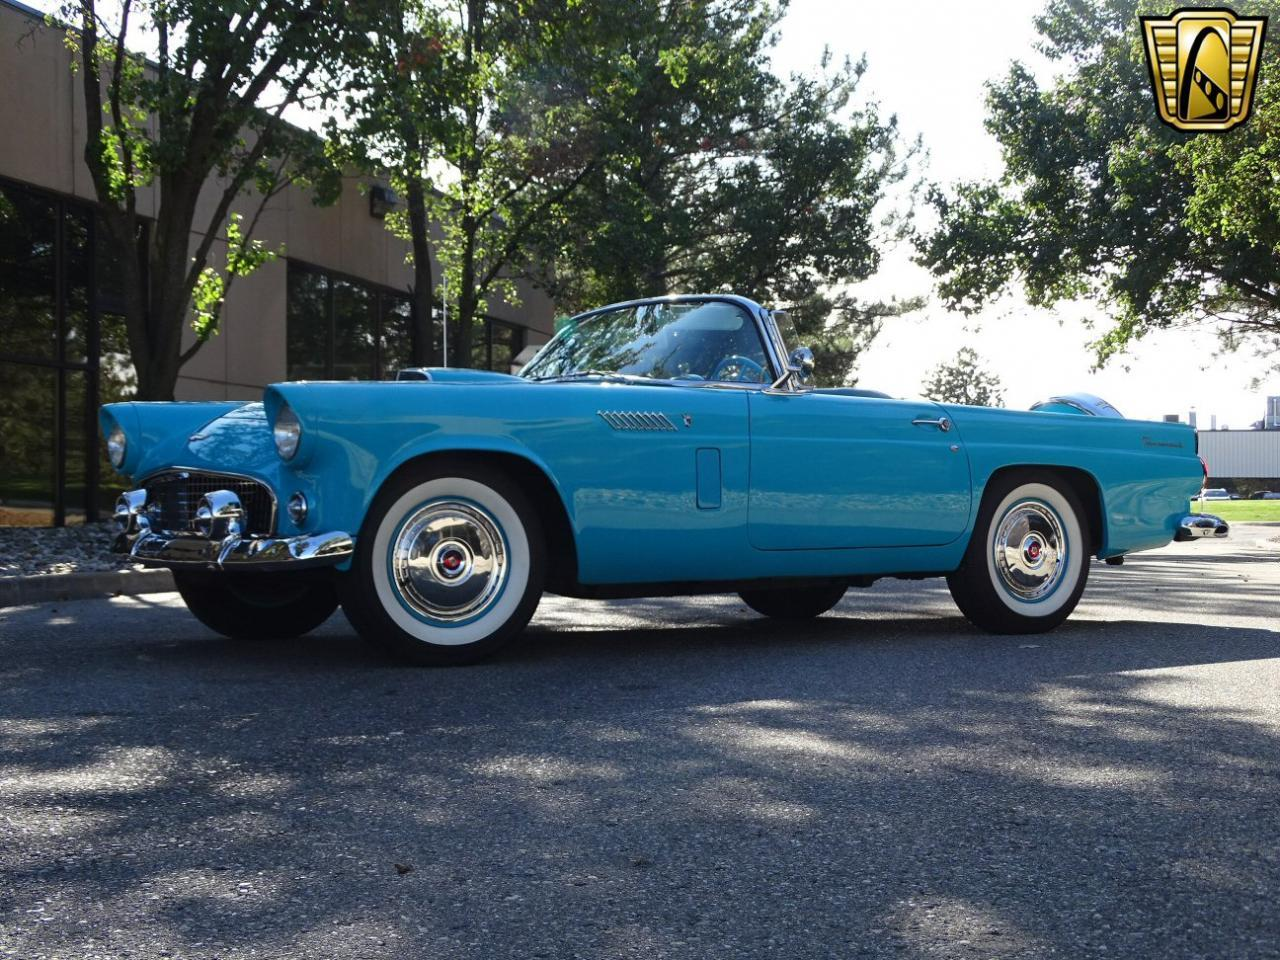 Large Picture of 1956 Ford Thunderbird located in Michigan - $34,995.00 Offered by Gateway Classic Cars - Detroit - M6BX